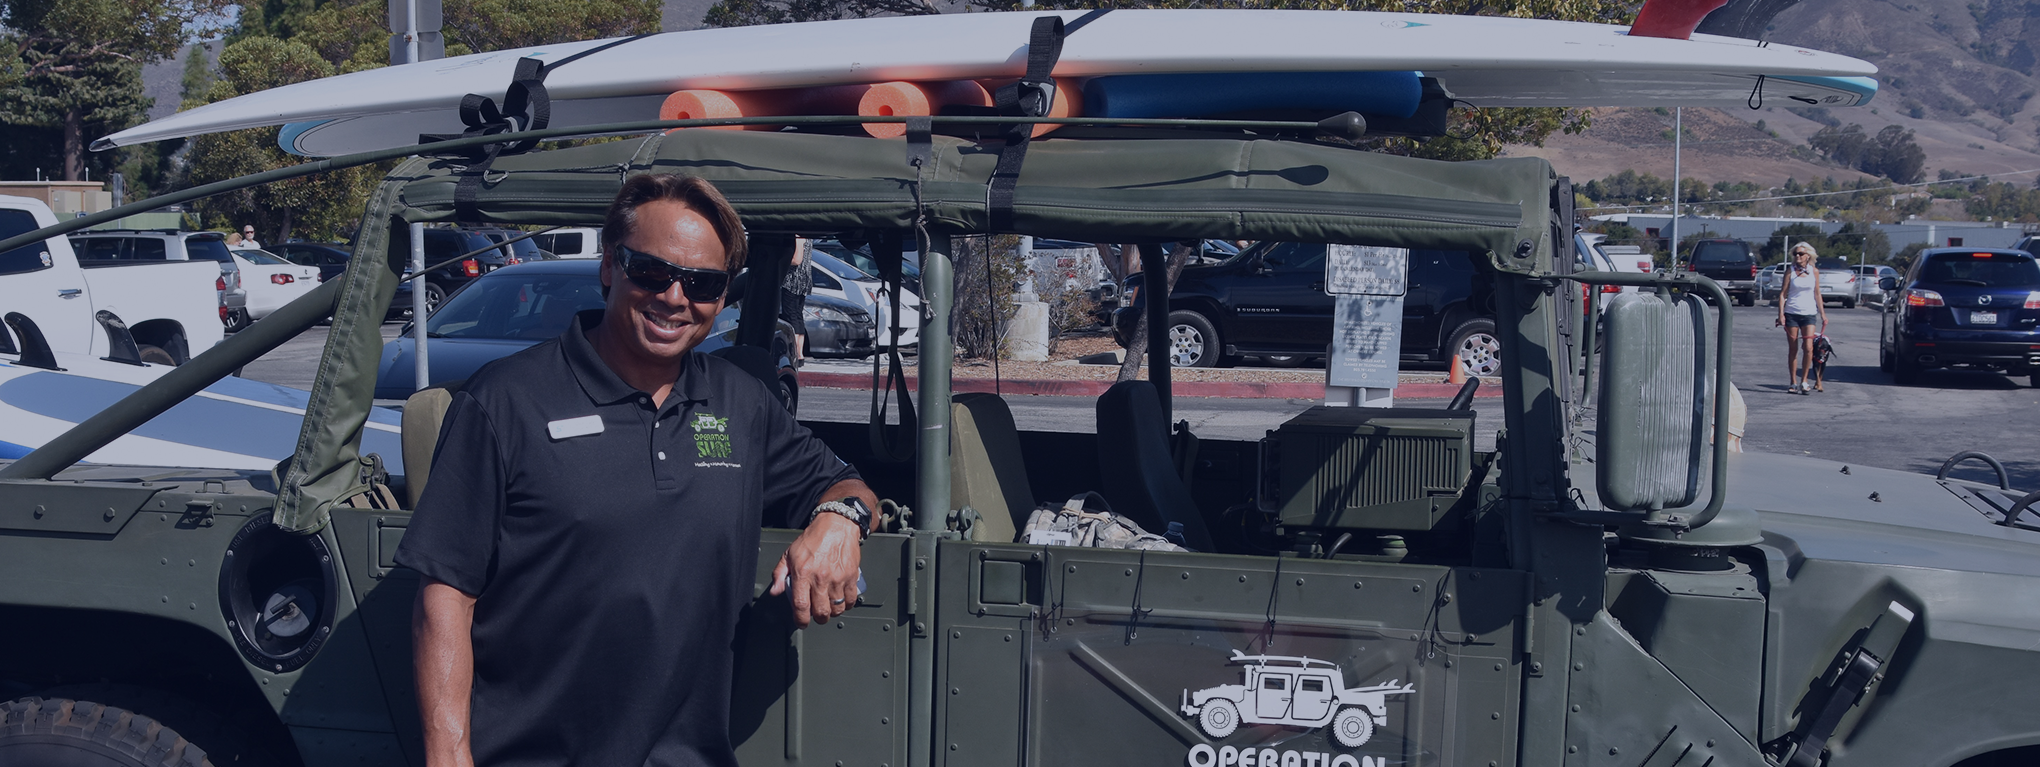 Instructor Van Curaza poses with jeep